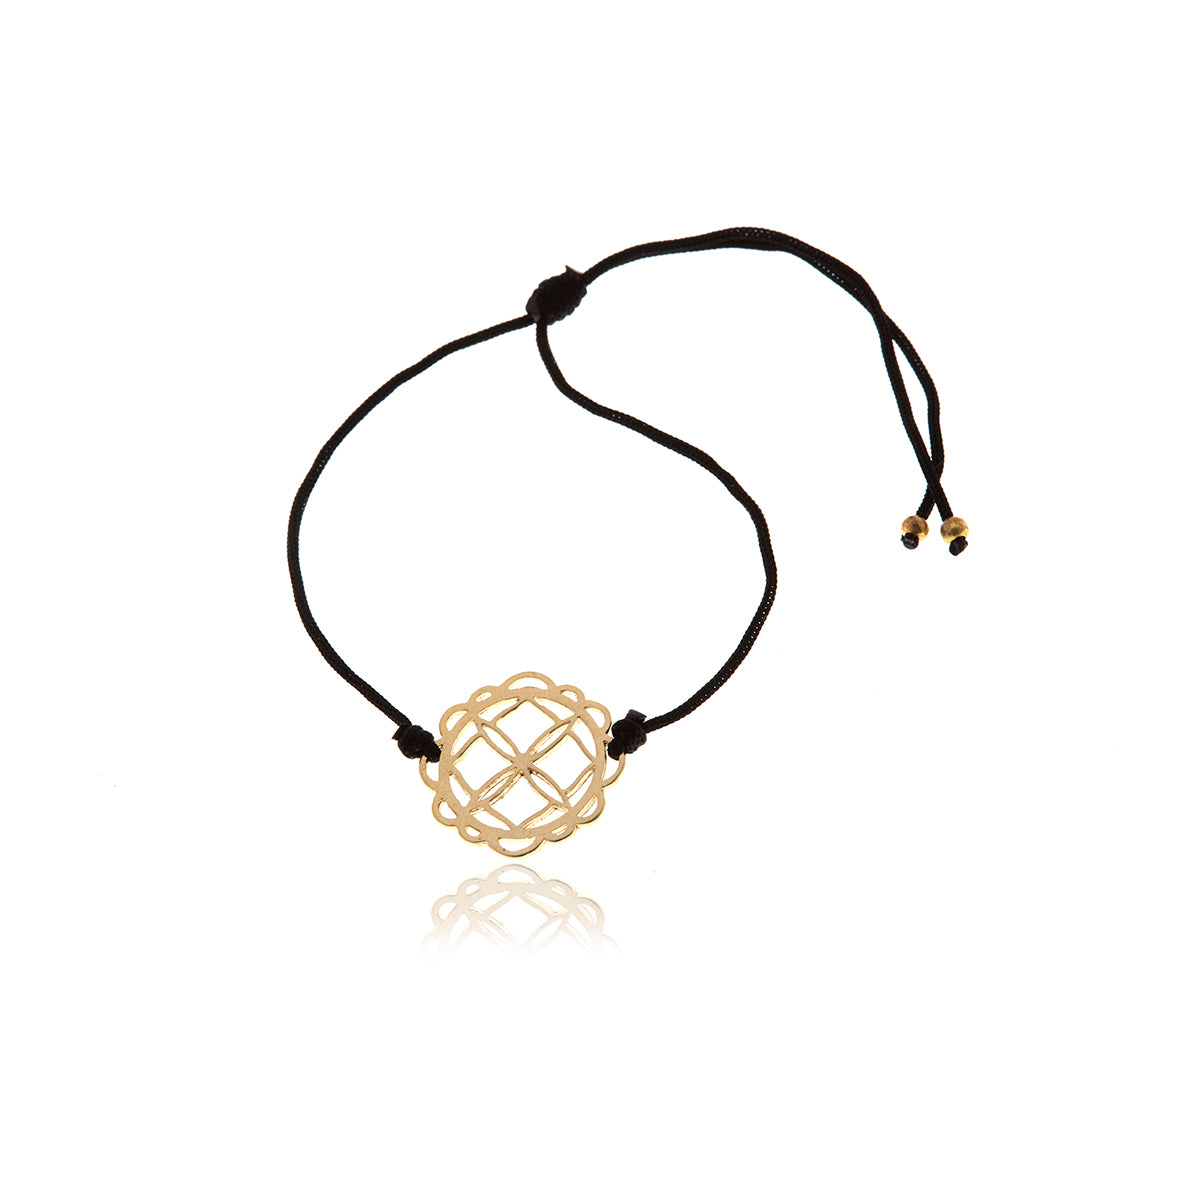 Empower Women Signature Bracelet